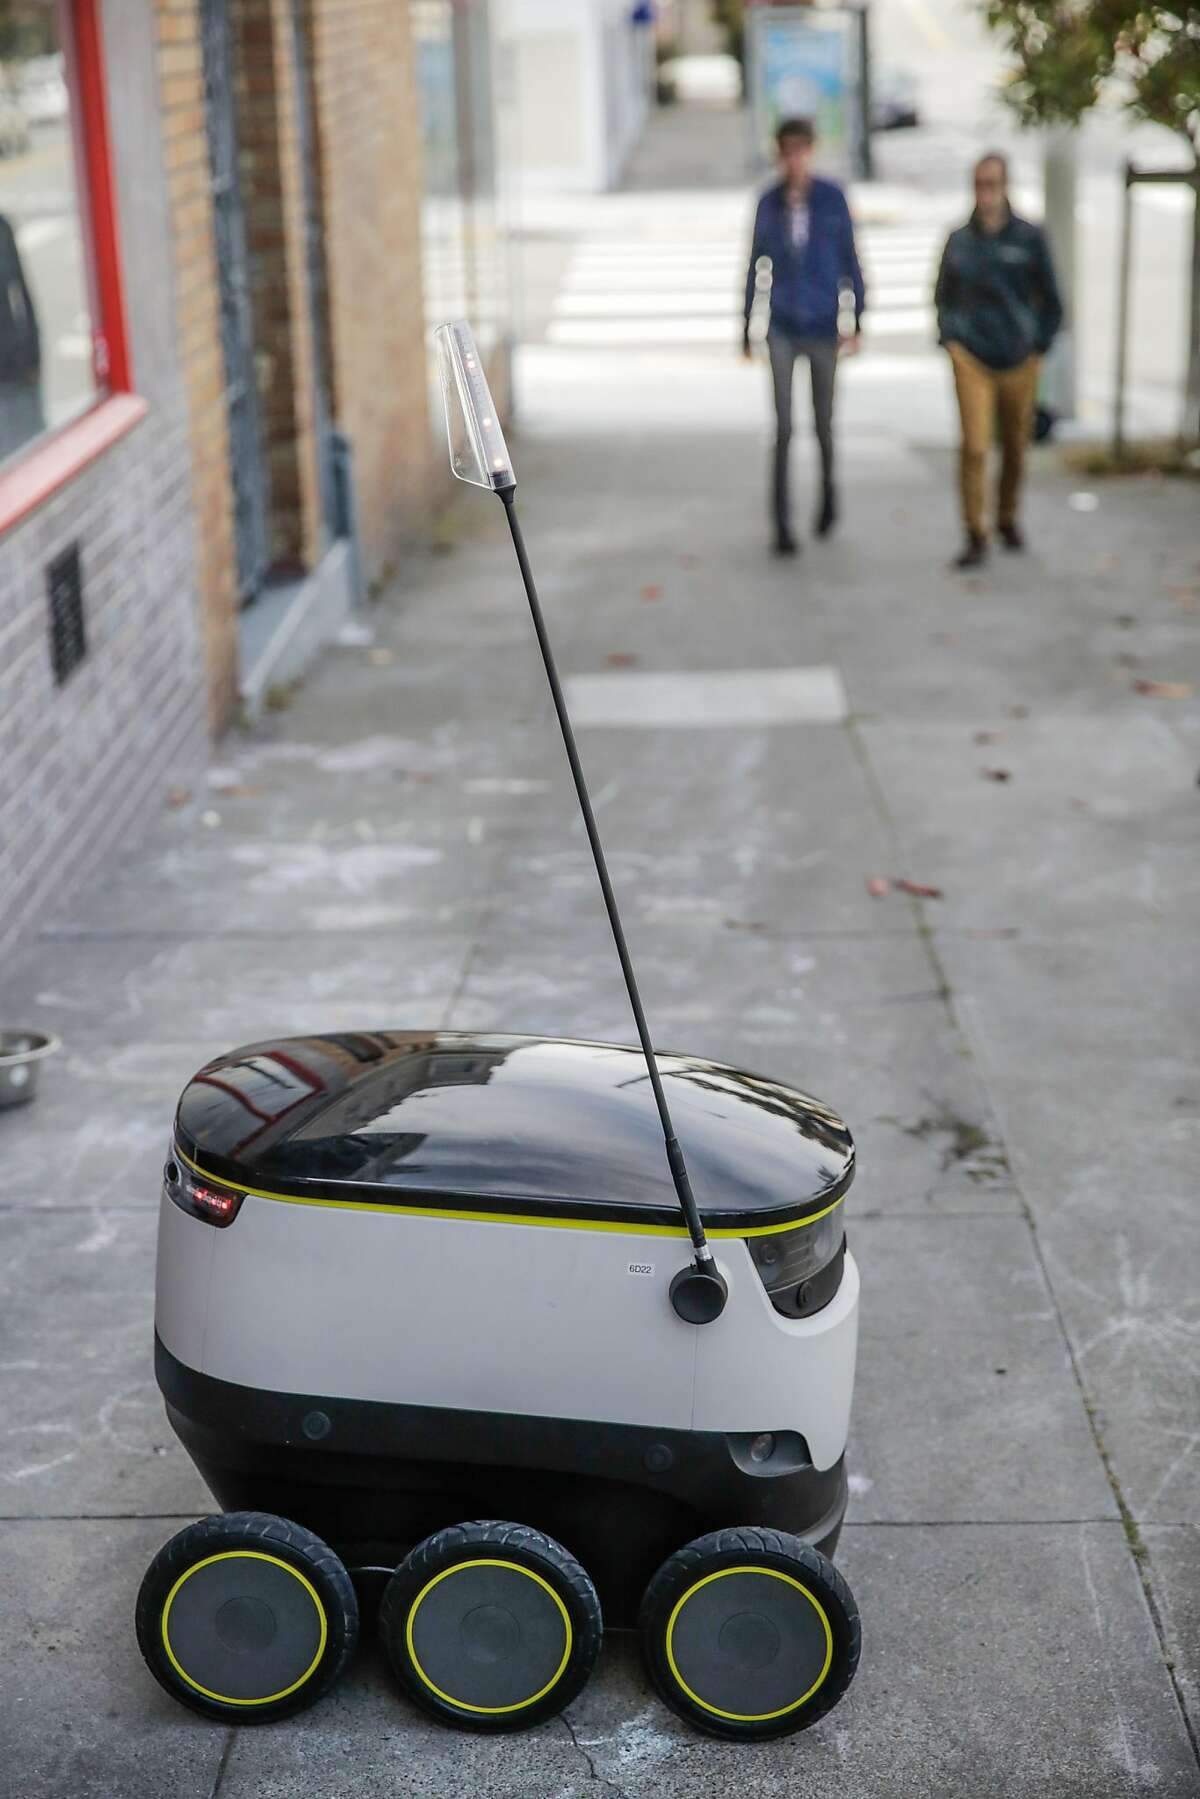 A starship delivery robot sits outside Orson's Belly cafe as it prepares to do it's first autonomous delivery, in San Francisco, California, on Tuesday, Sept. 20, 2016.